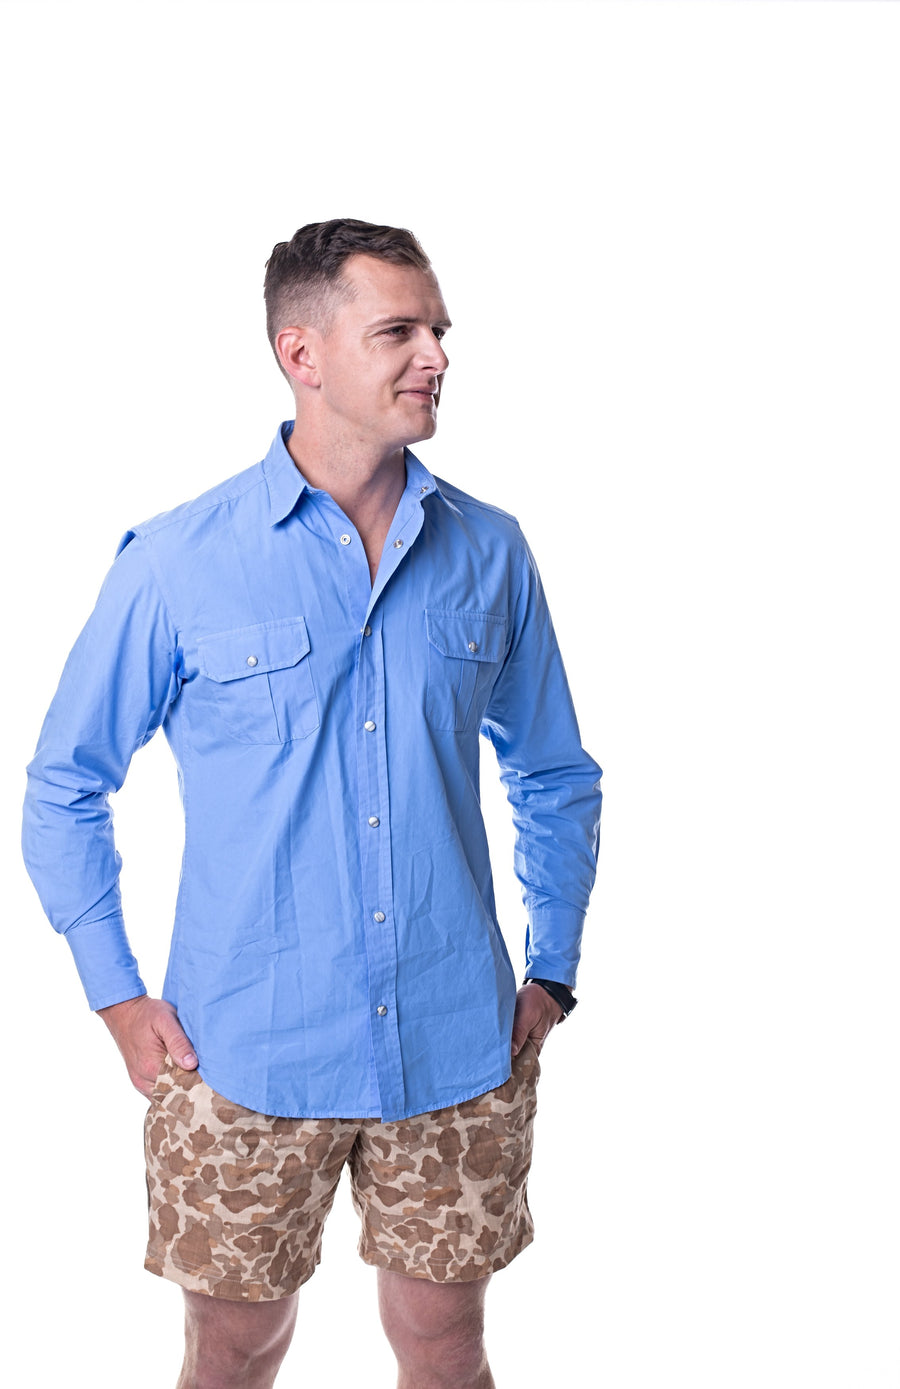 The Must Have Blue Shirt